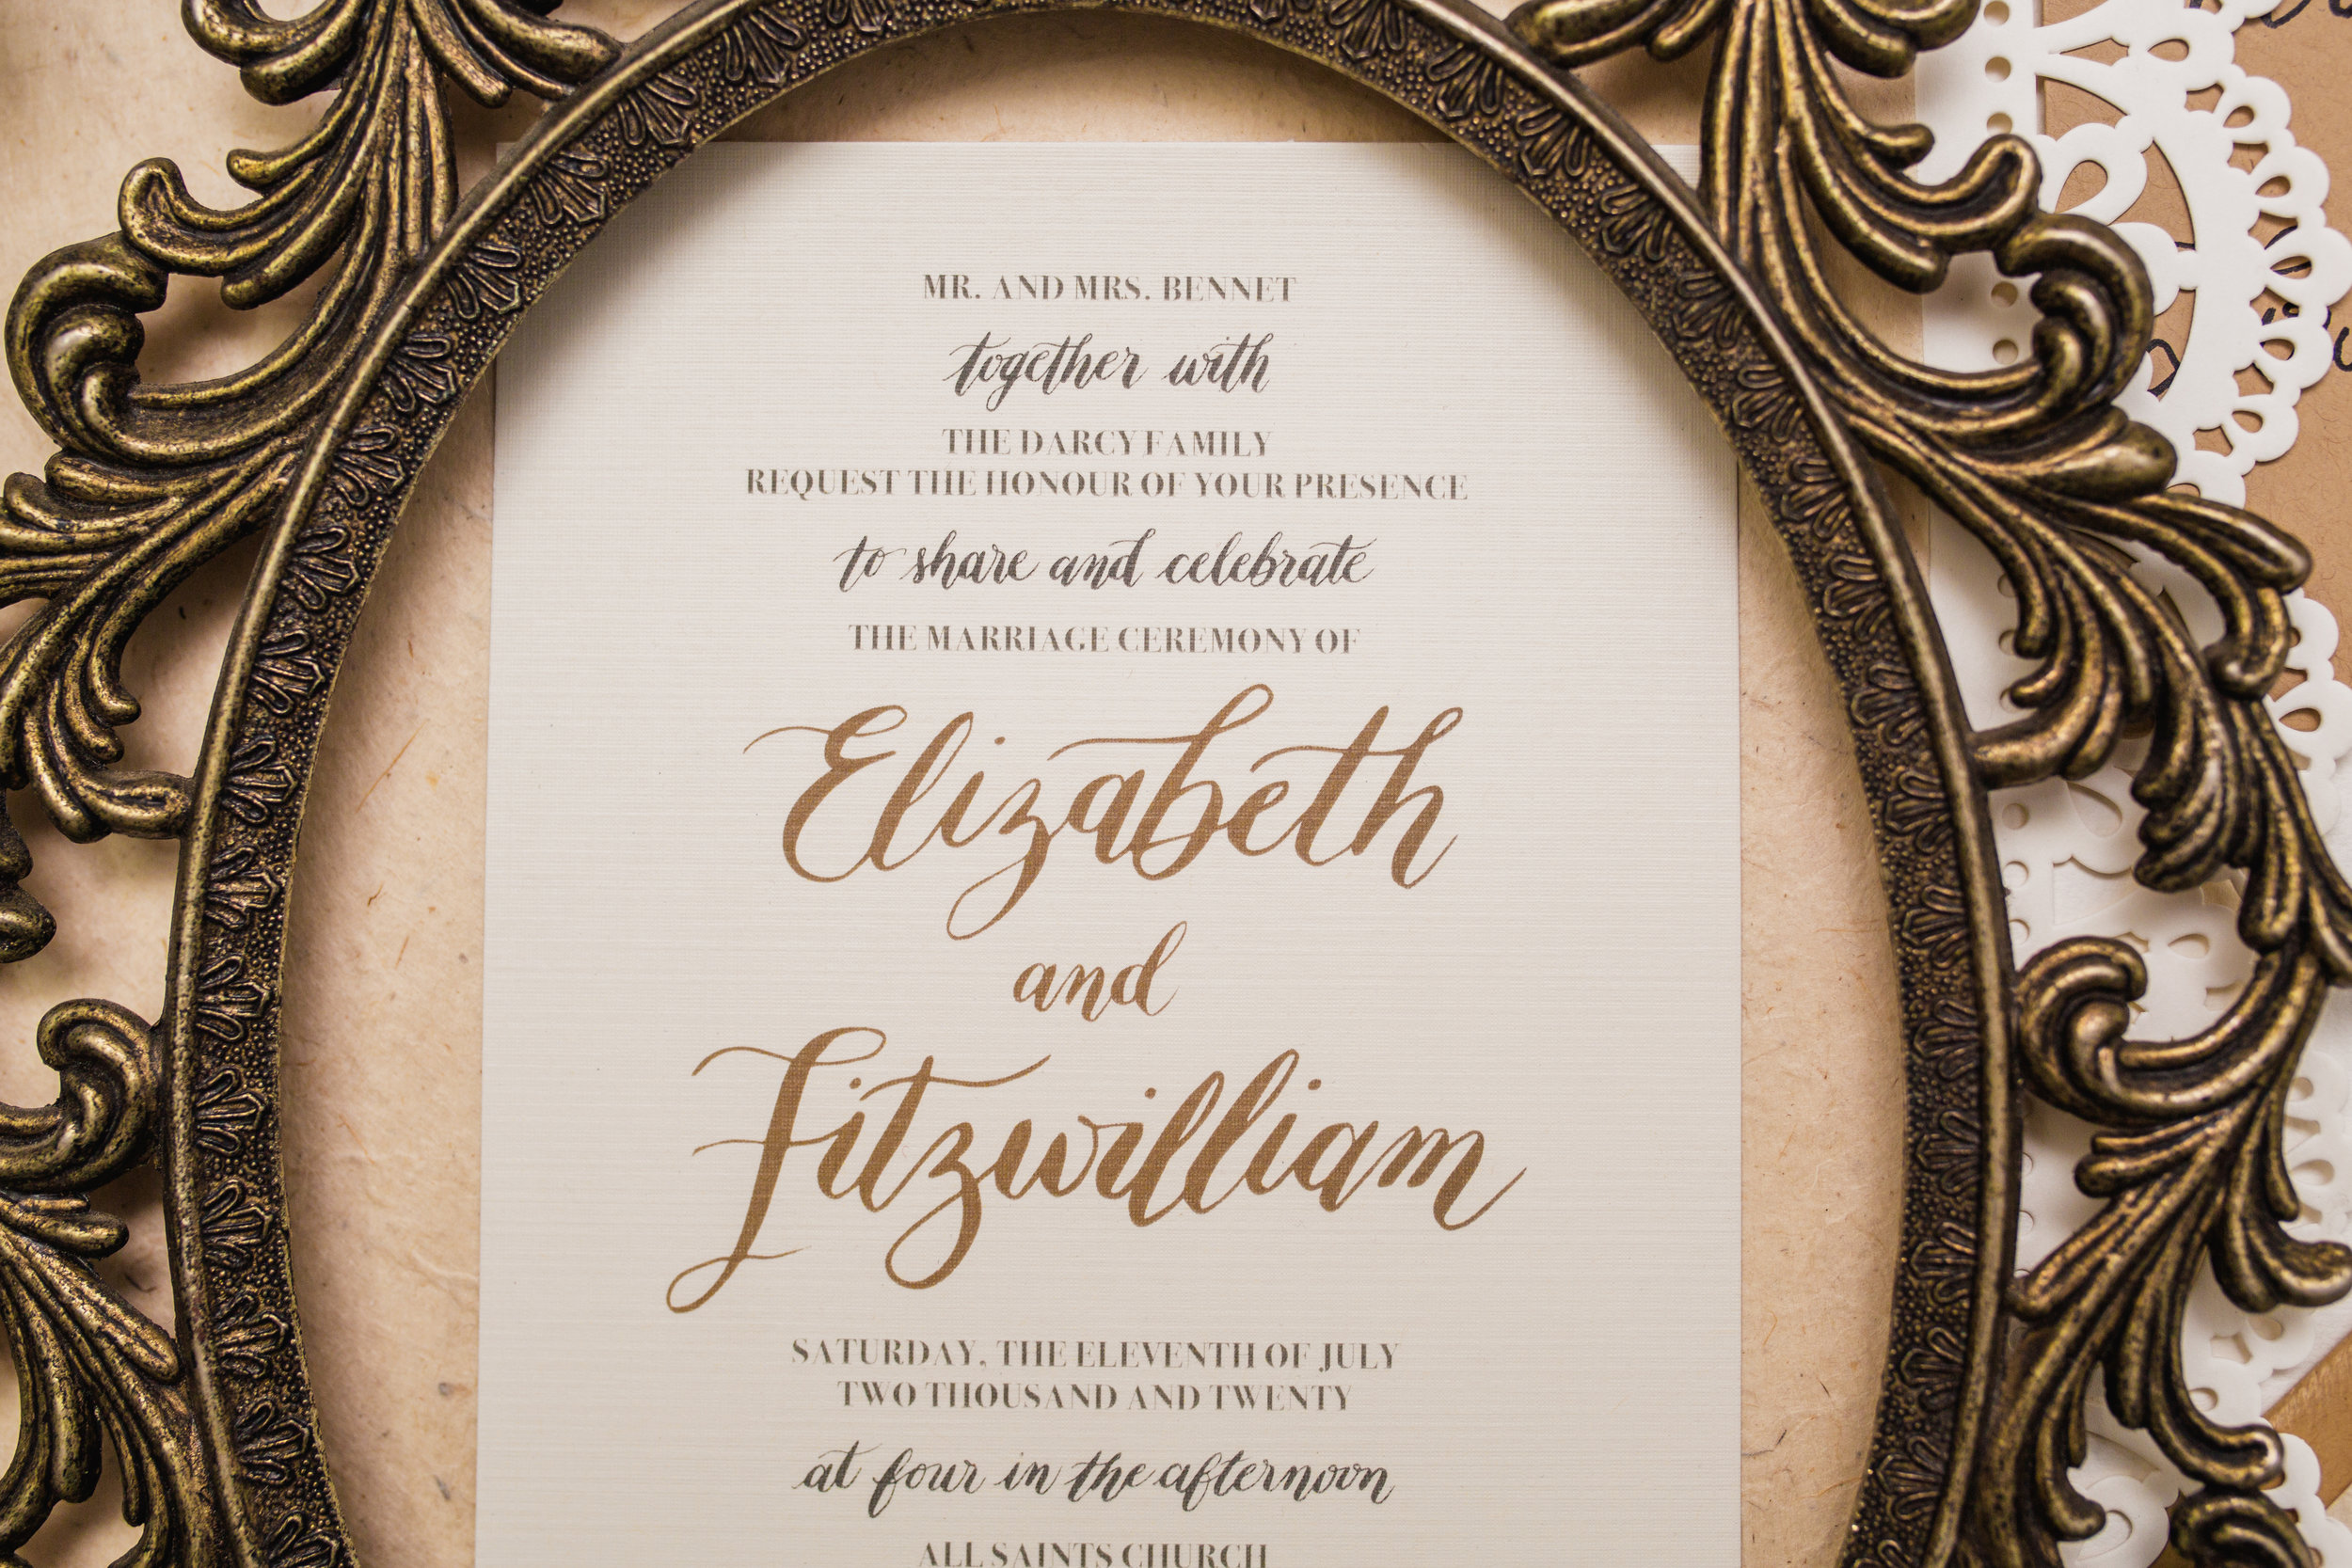 Torontoweddinginvitations-23.jpg